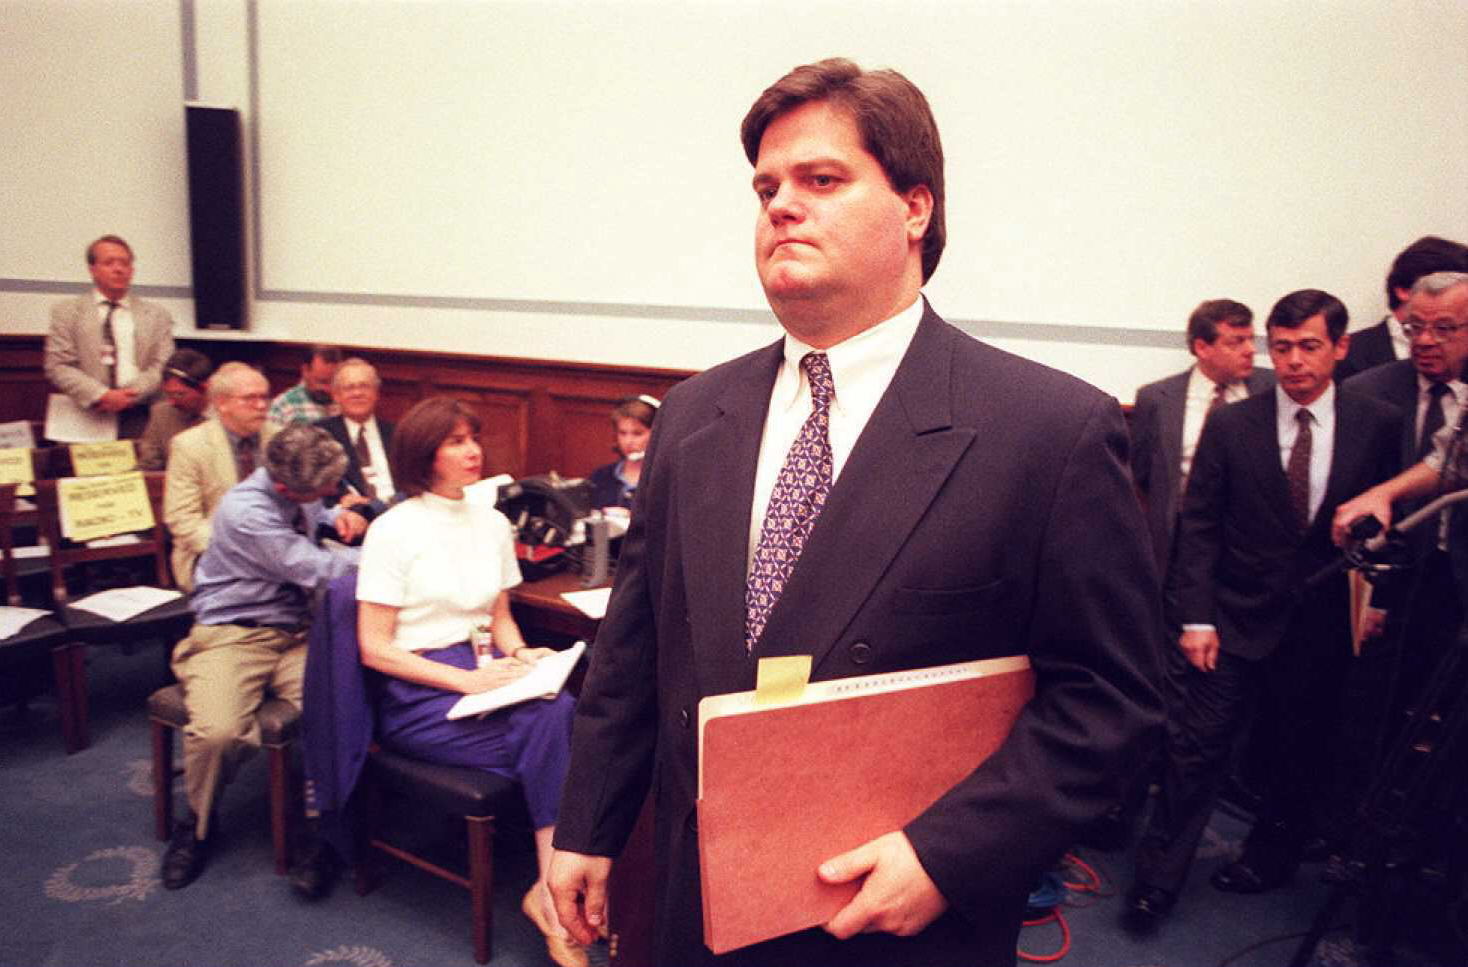 Former Clinton Administration Director of Personnel Security Craig Livingstone